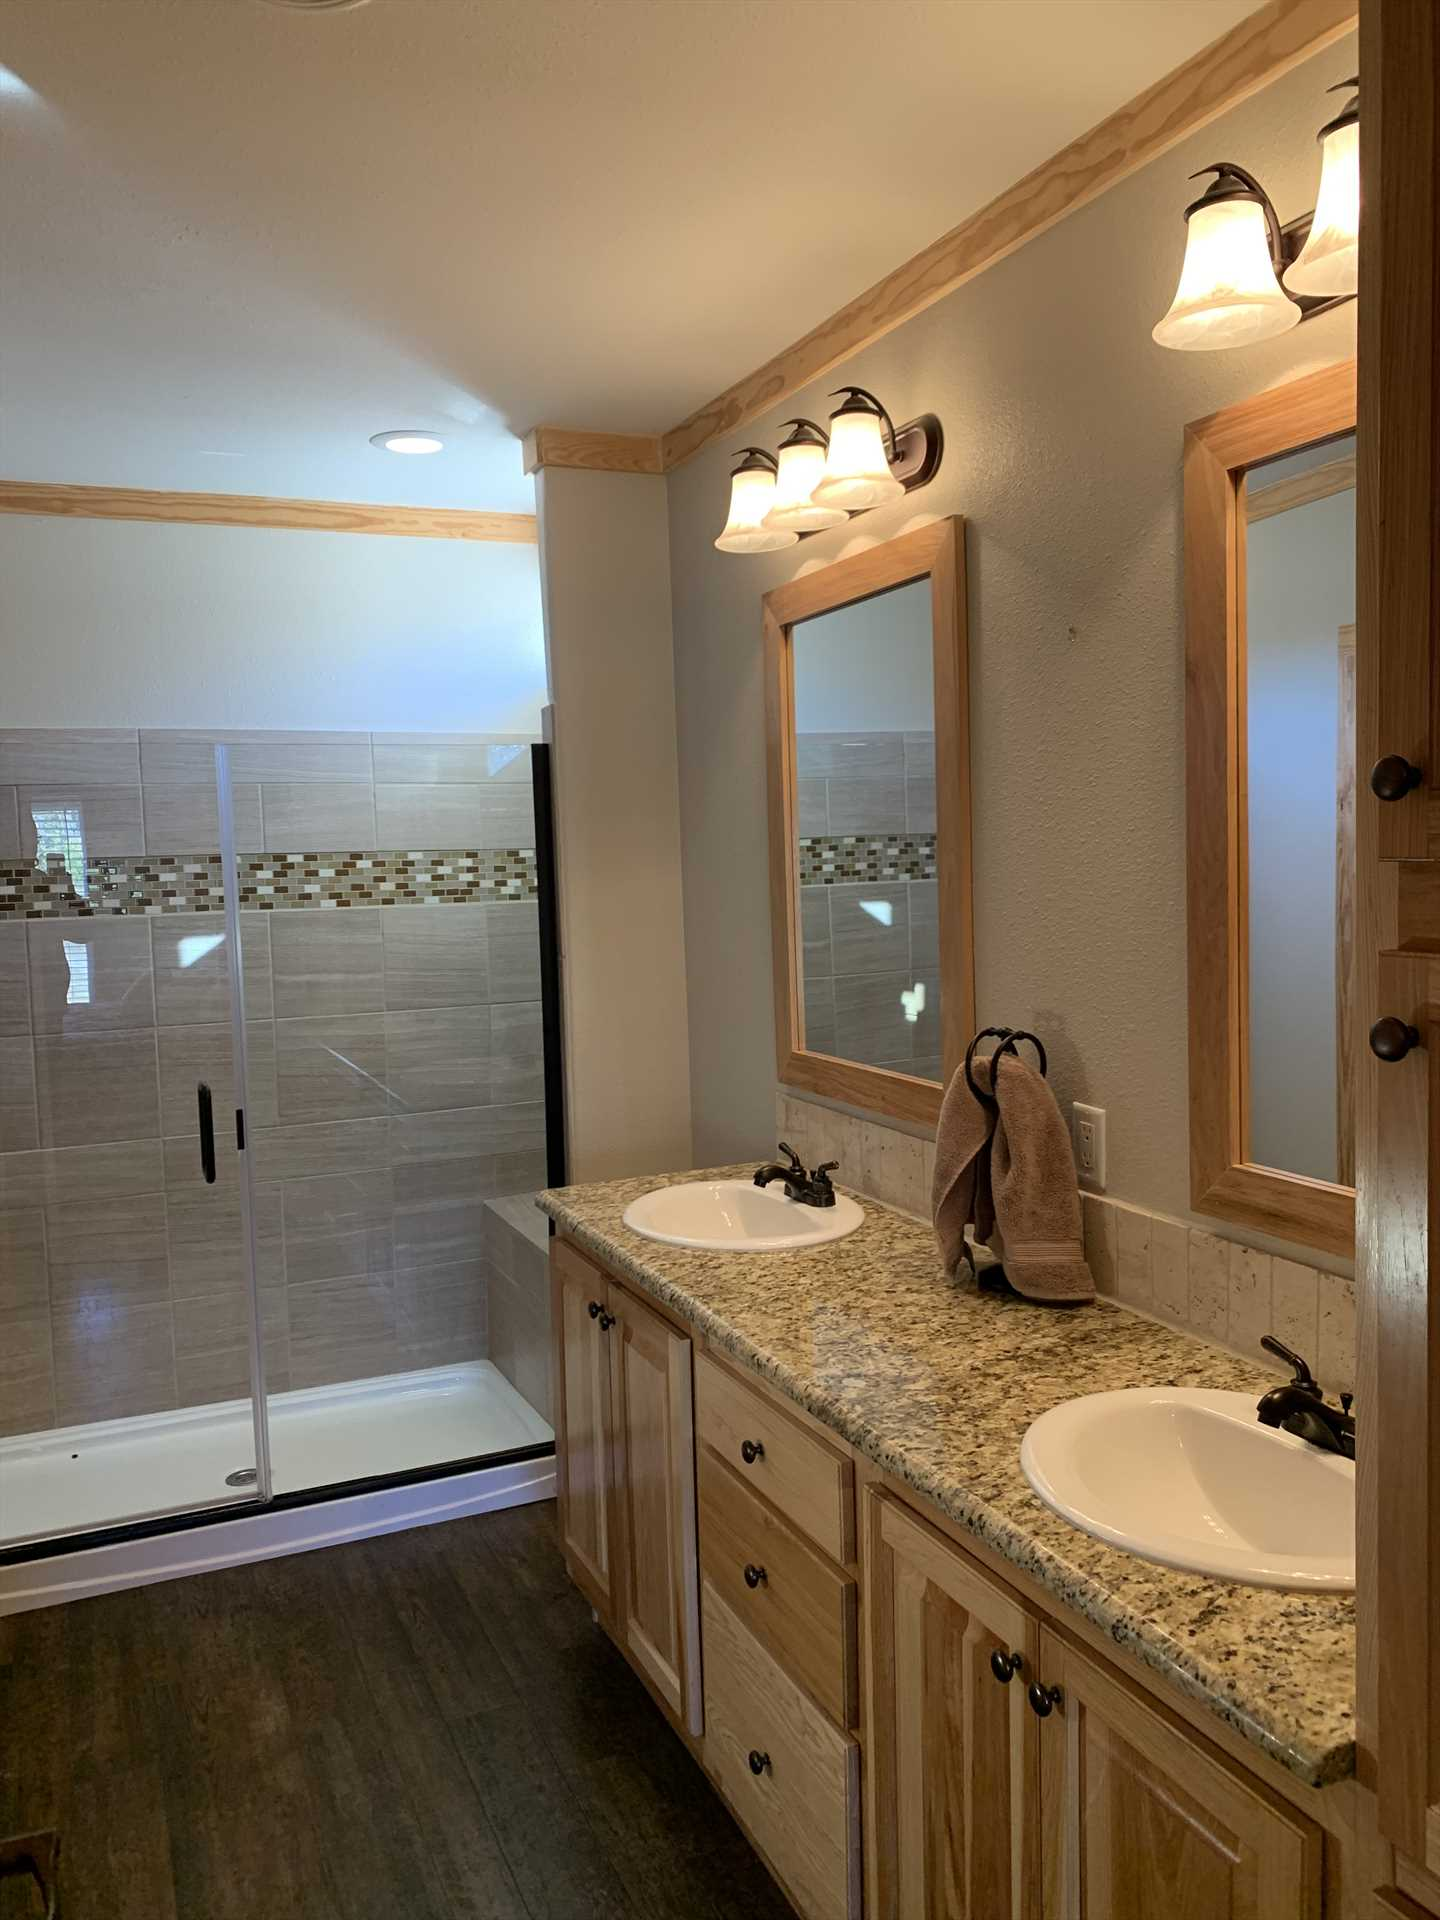 The sharp and stylish master bath includes a roomy walk-in shower and twin vanities. Both full baths at the Hideaway include clean towels and linens.